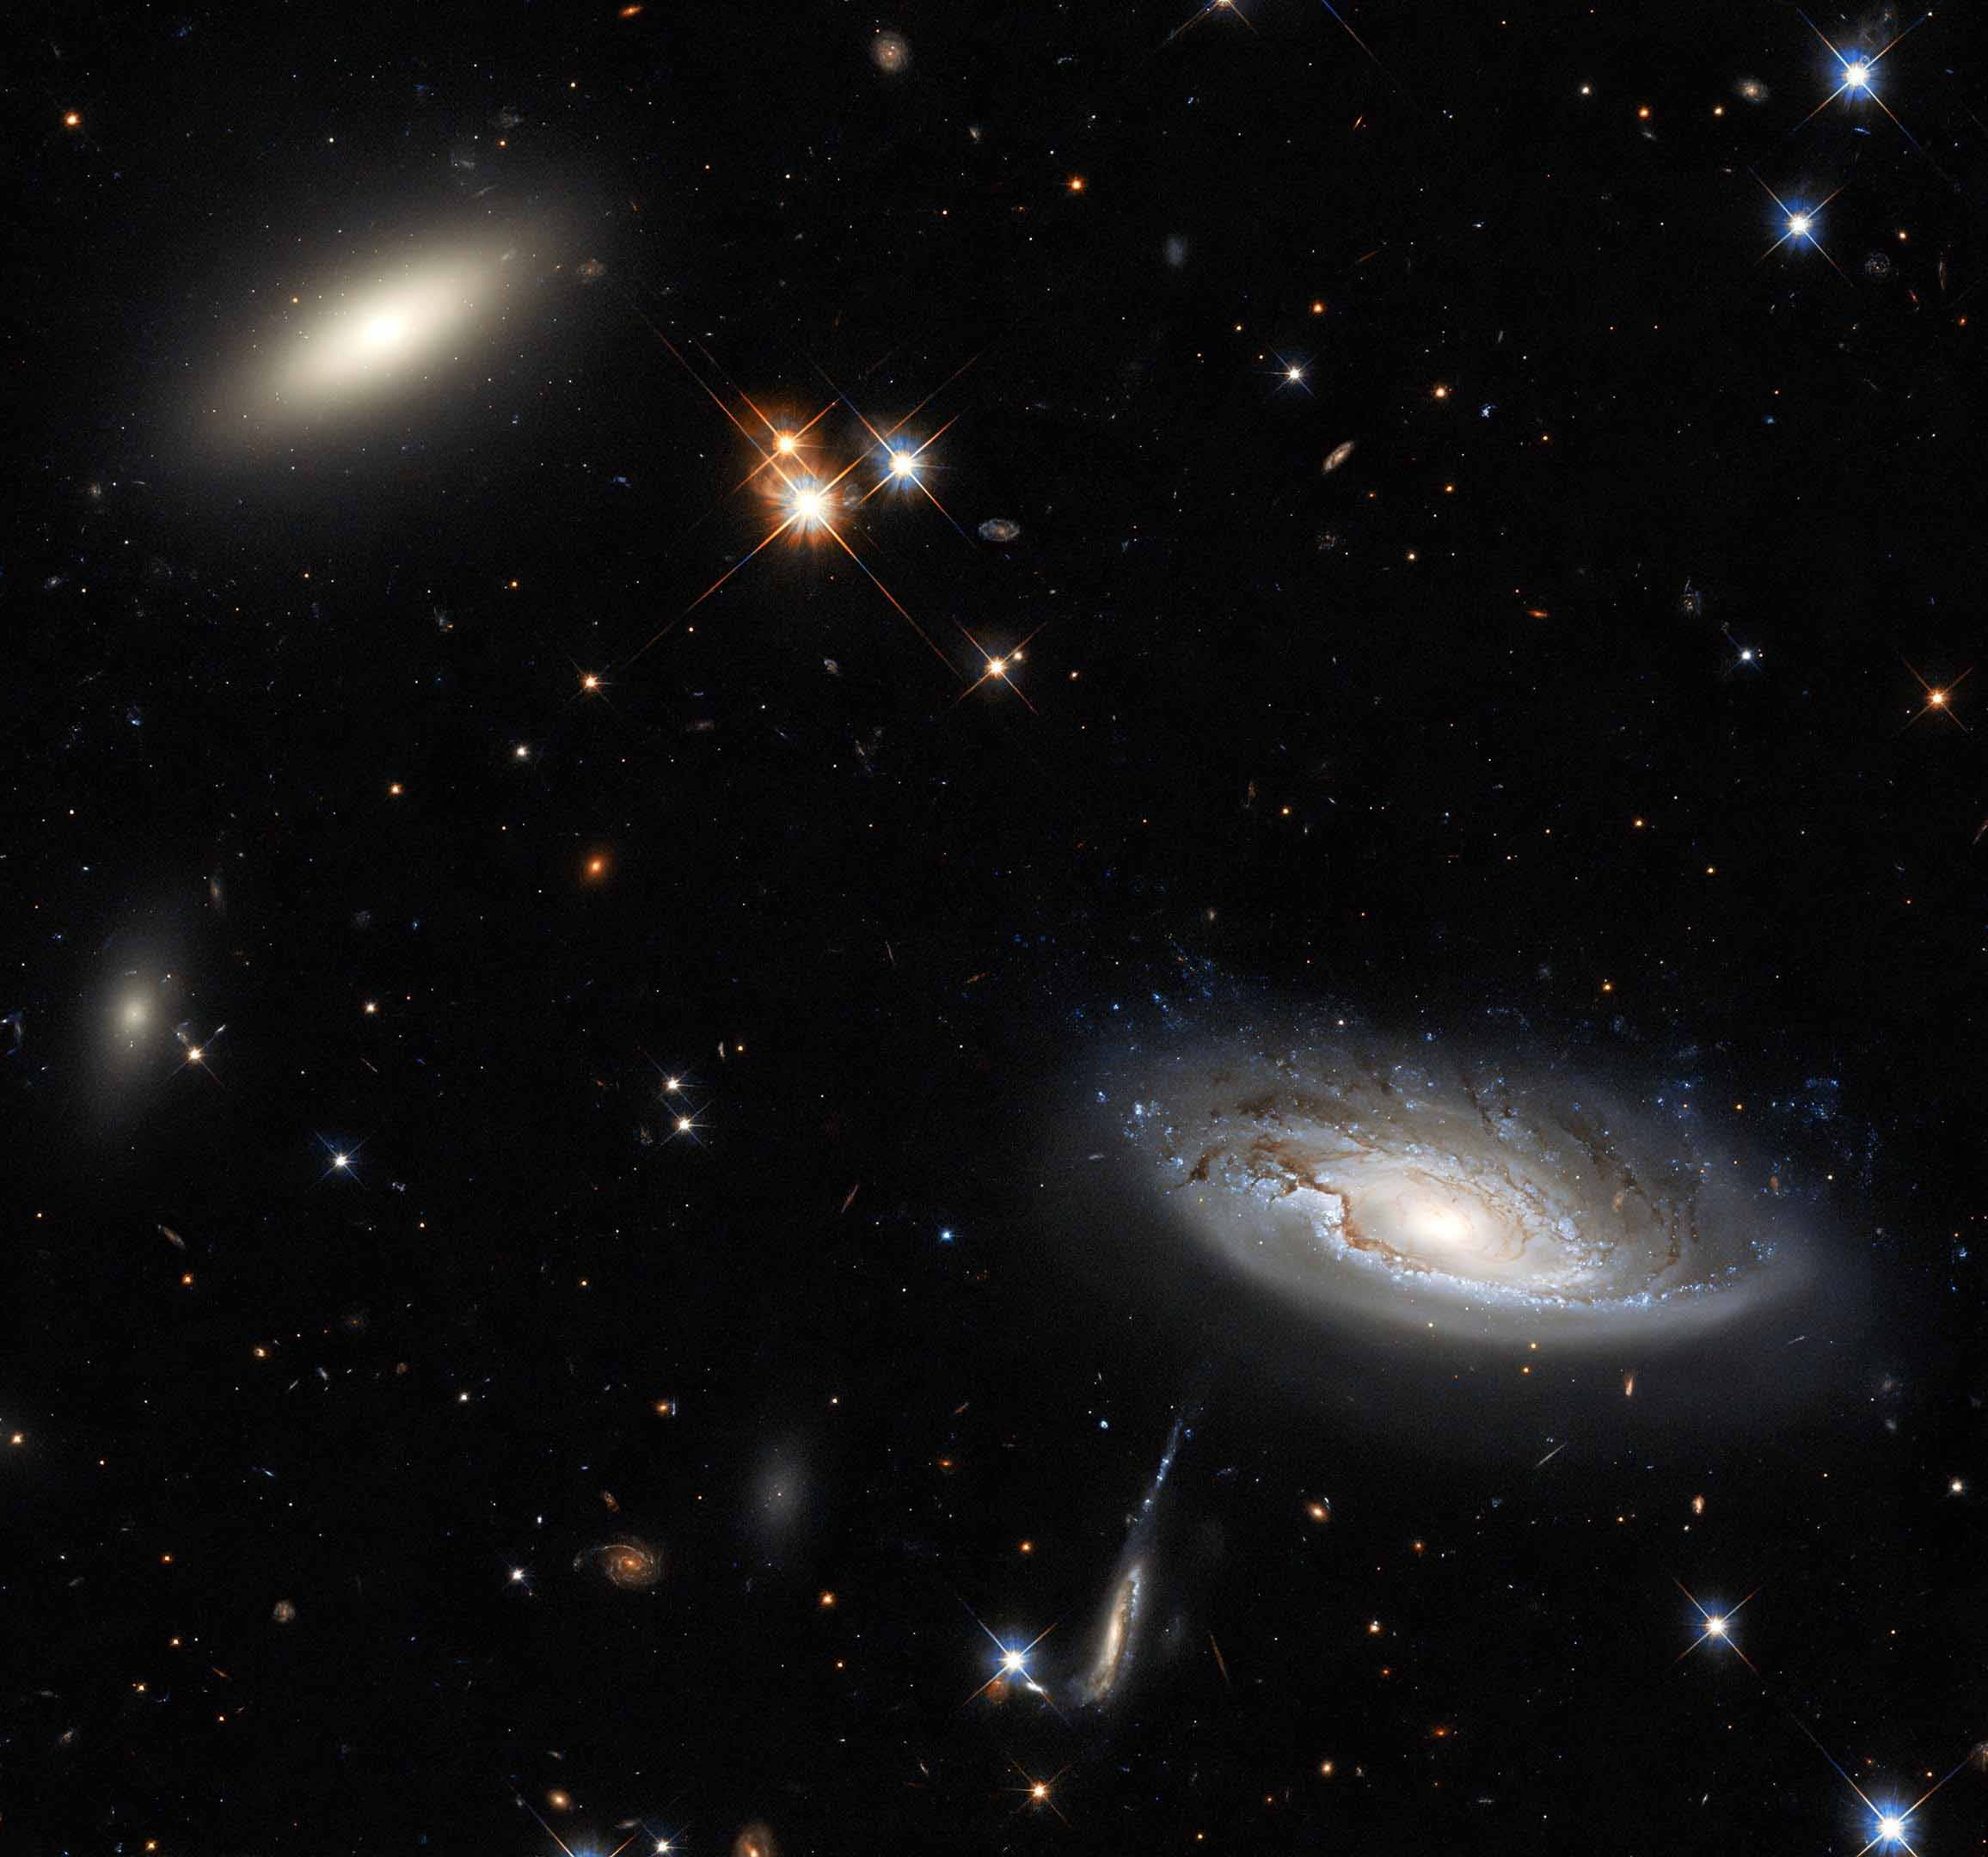 Two Galaxies 350 Million Light Years Distant in a Frame 2